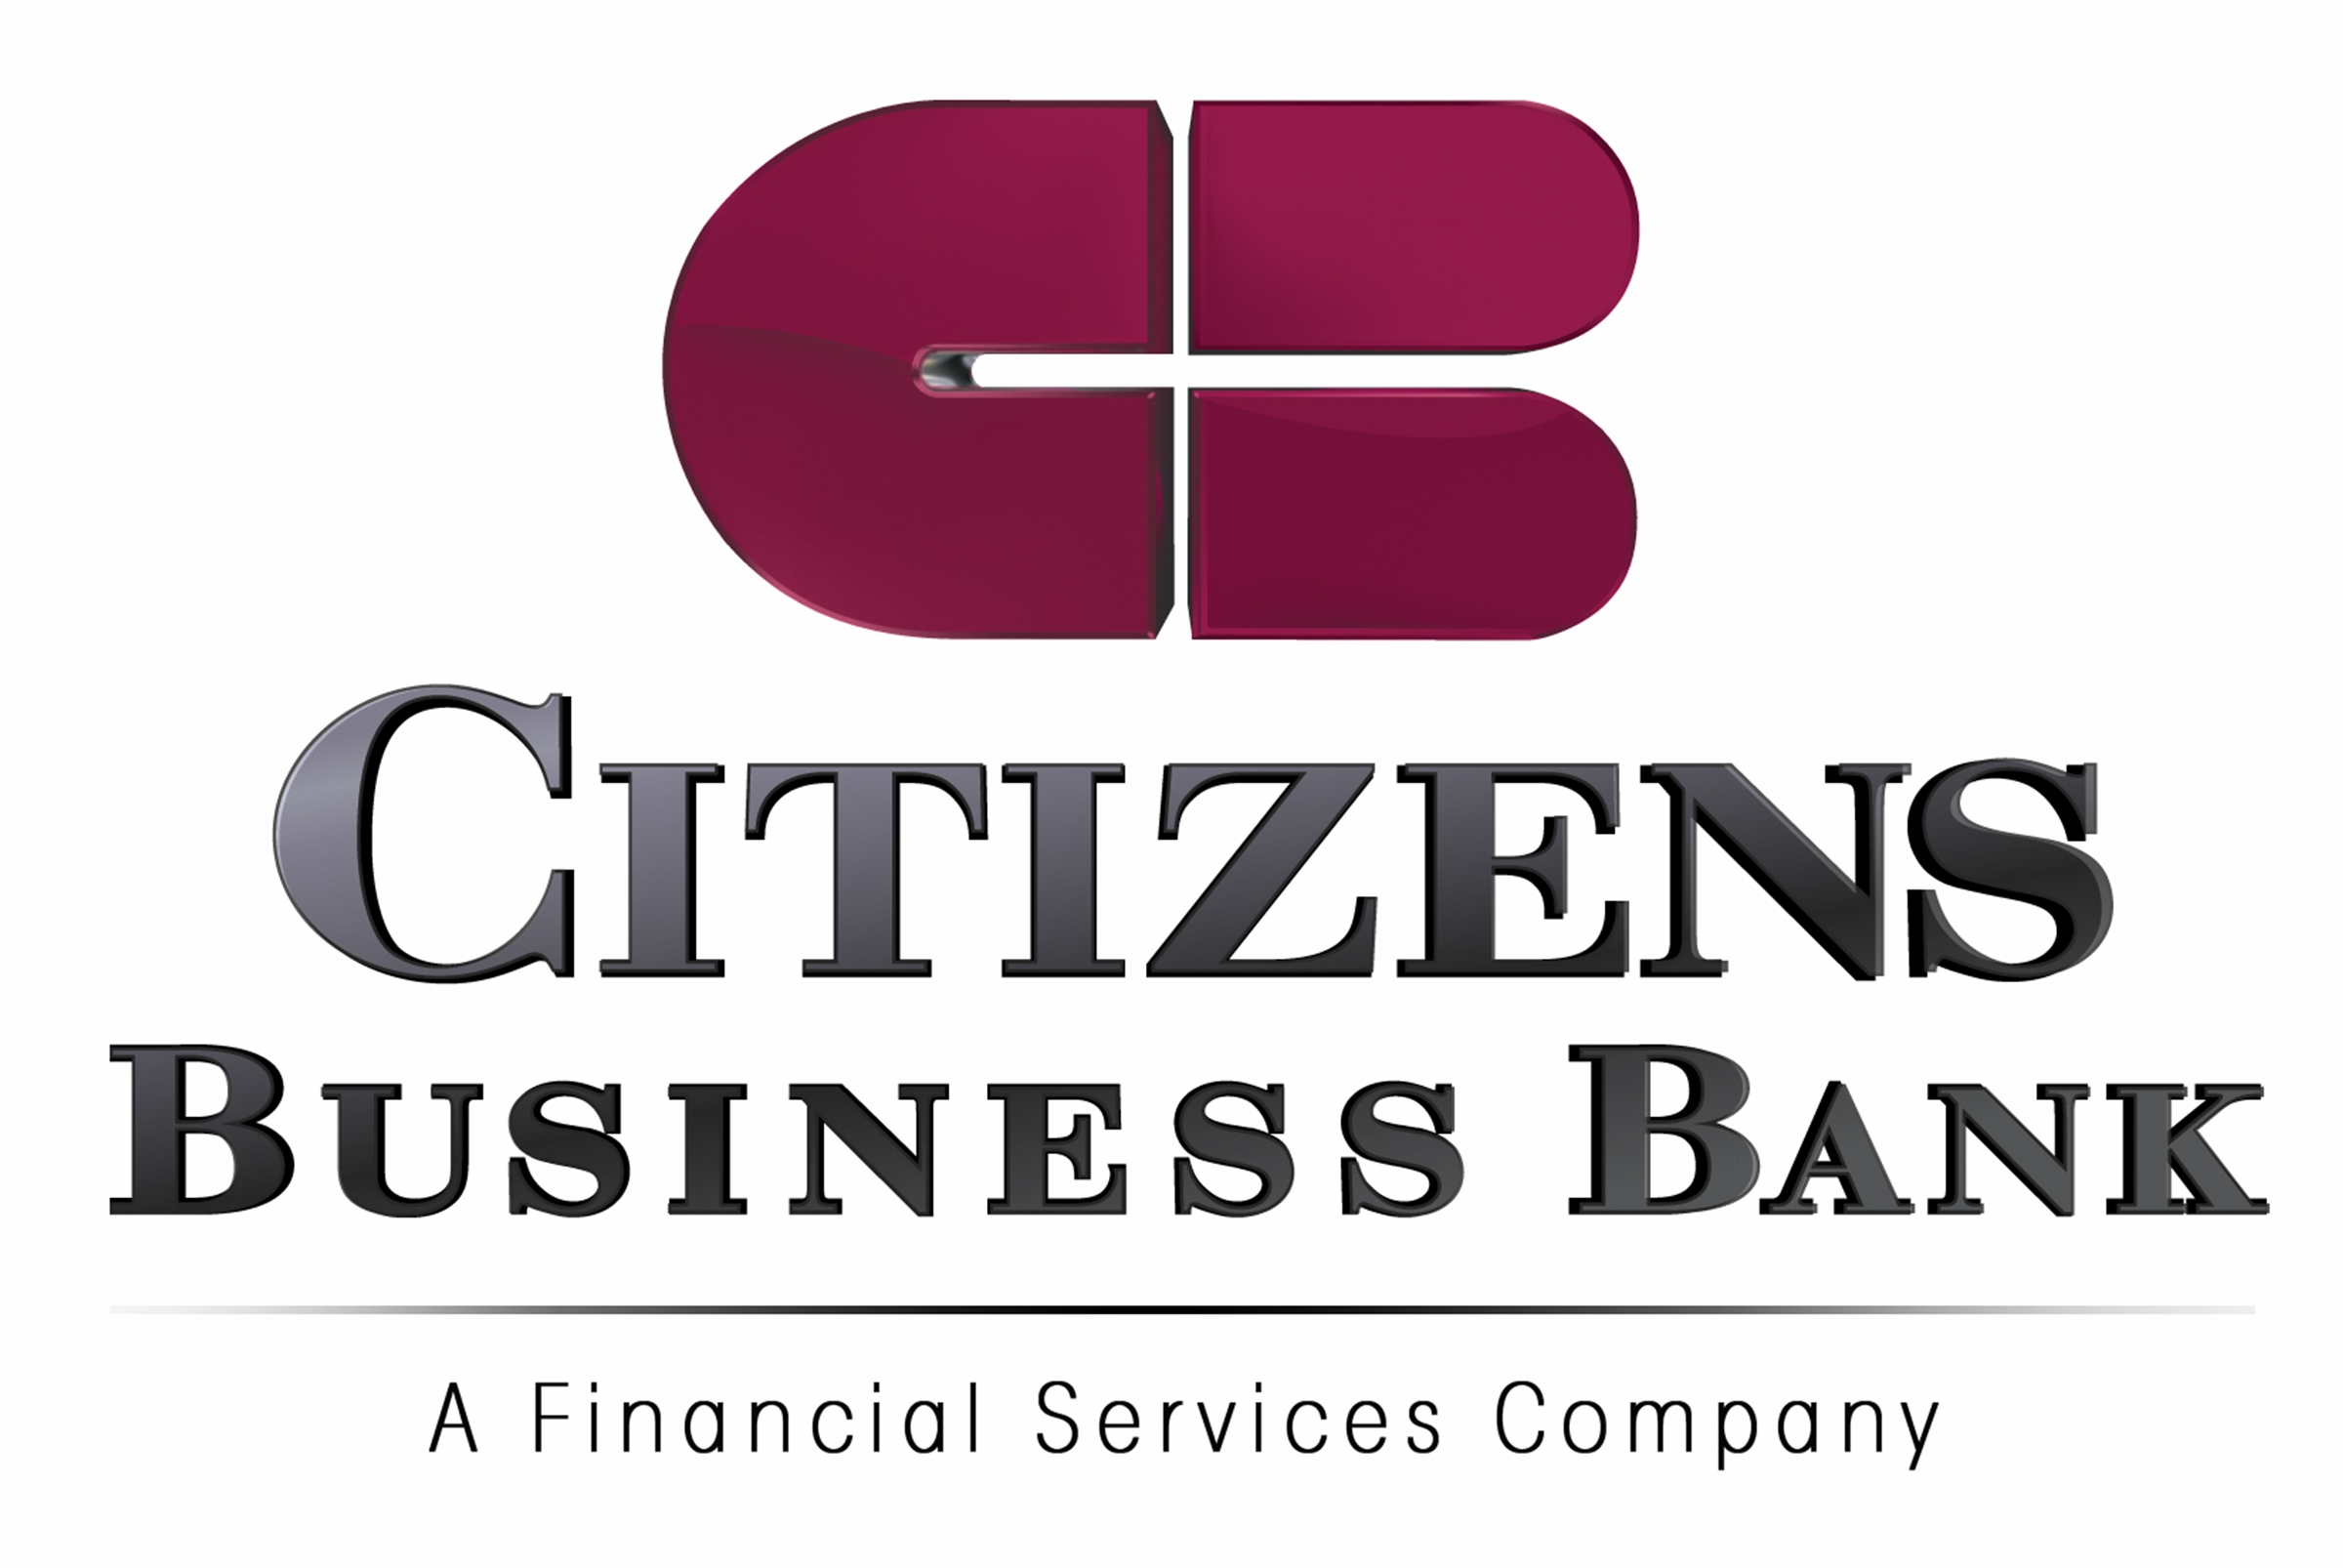 citizens-business-bank.jpg